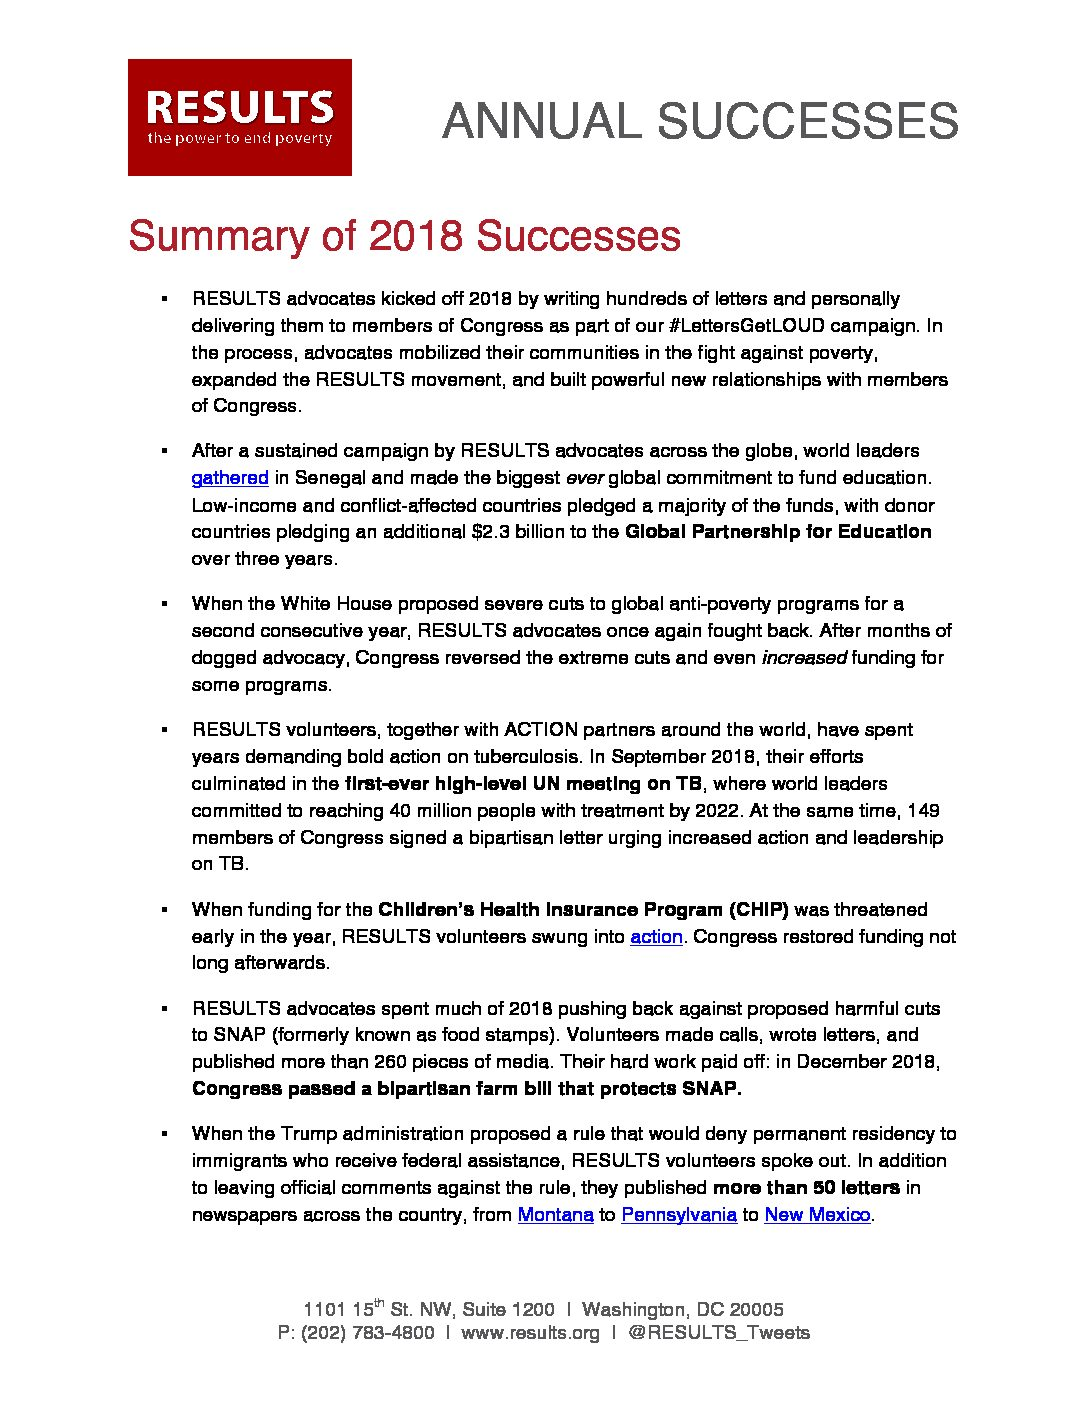 Annual Successes 2018